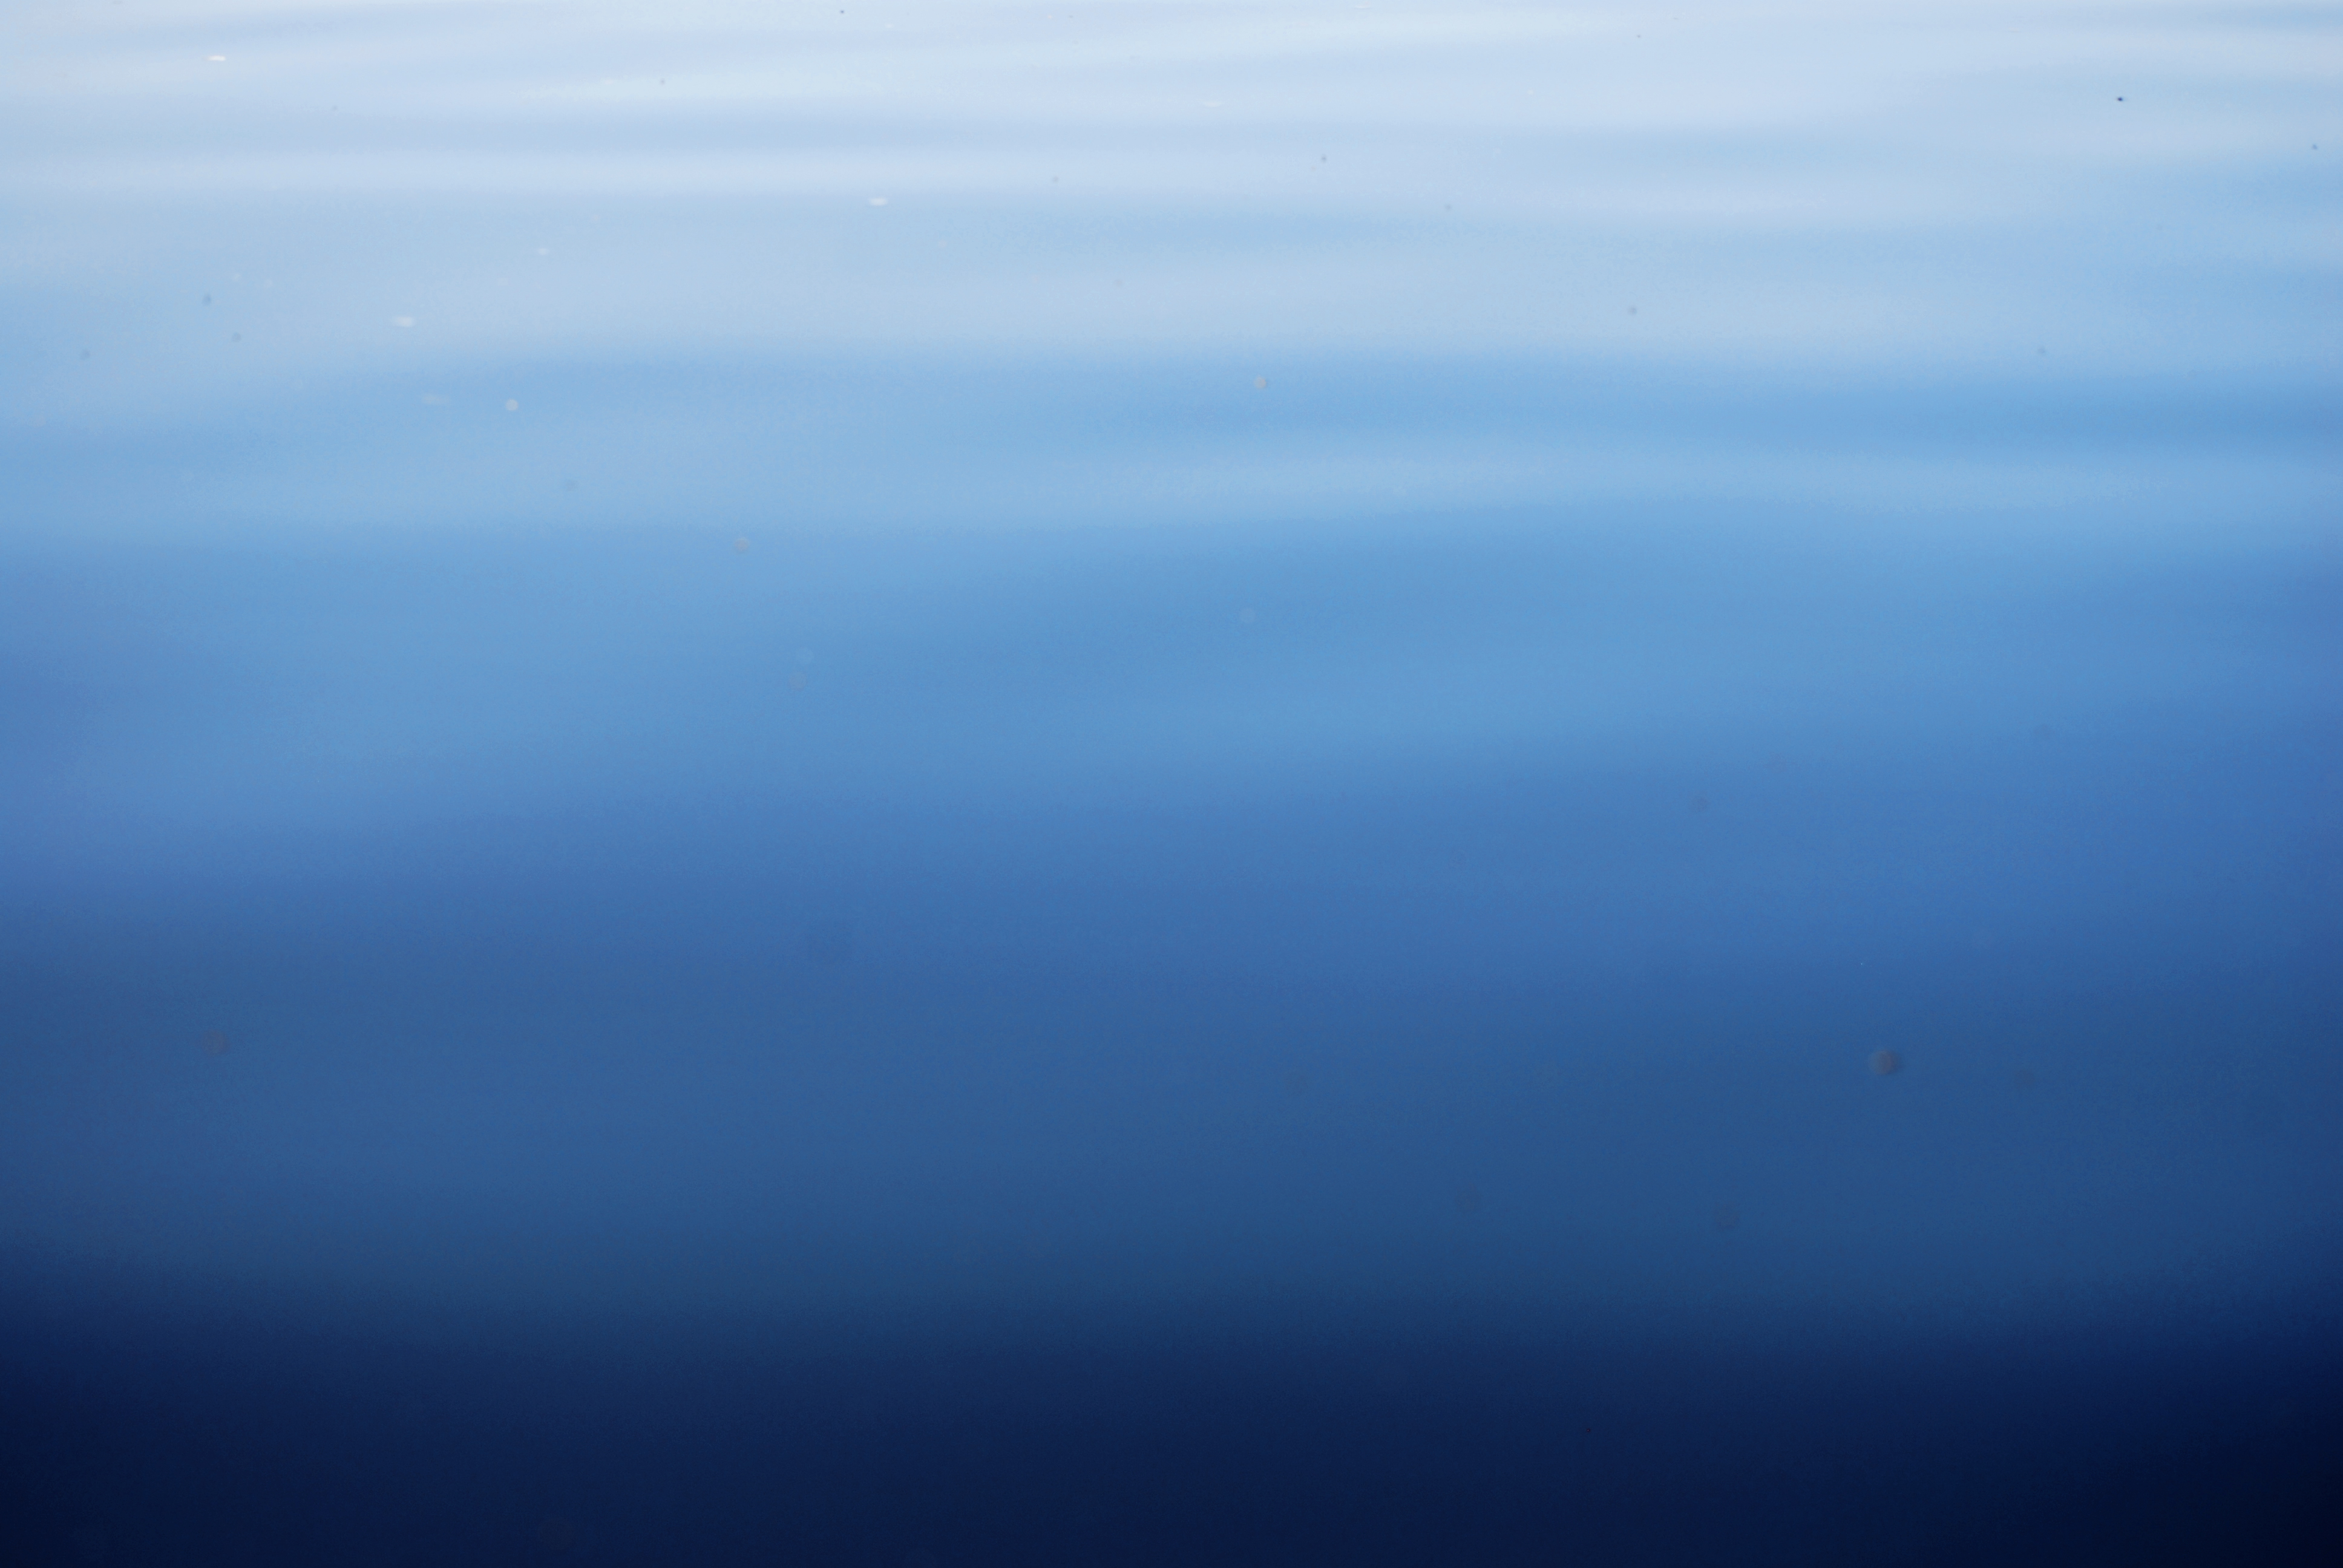 Water Surface 2 by Sed-rah-Stock on DeviantArt